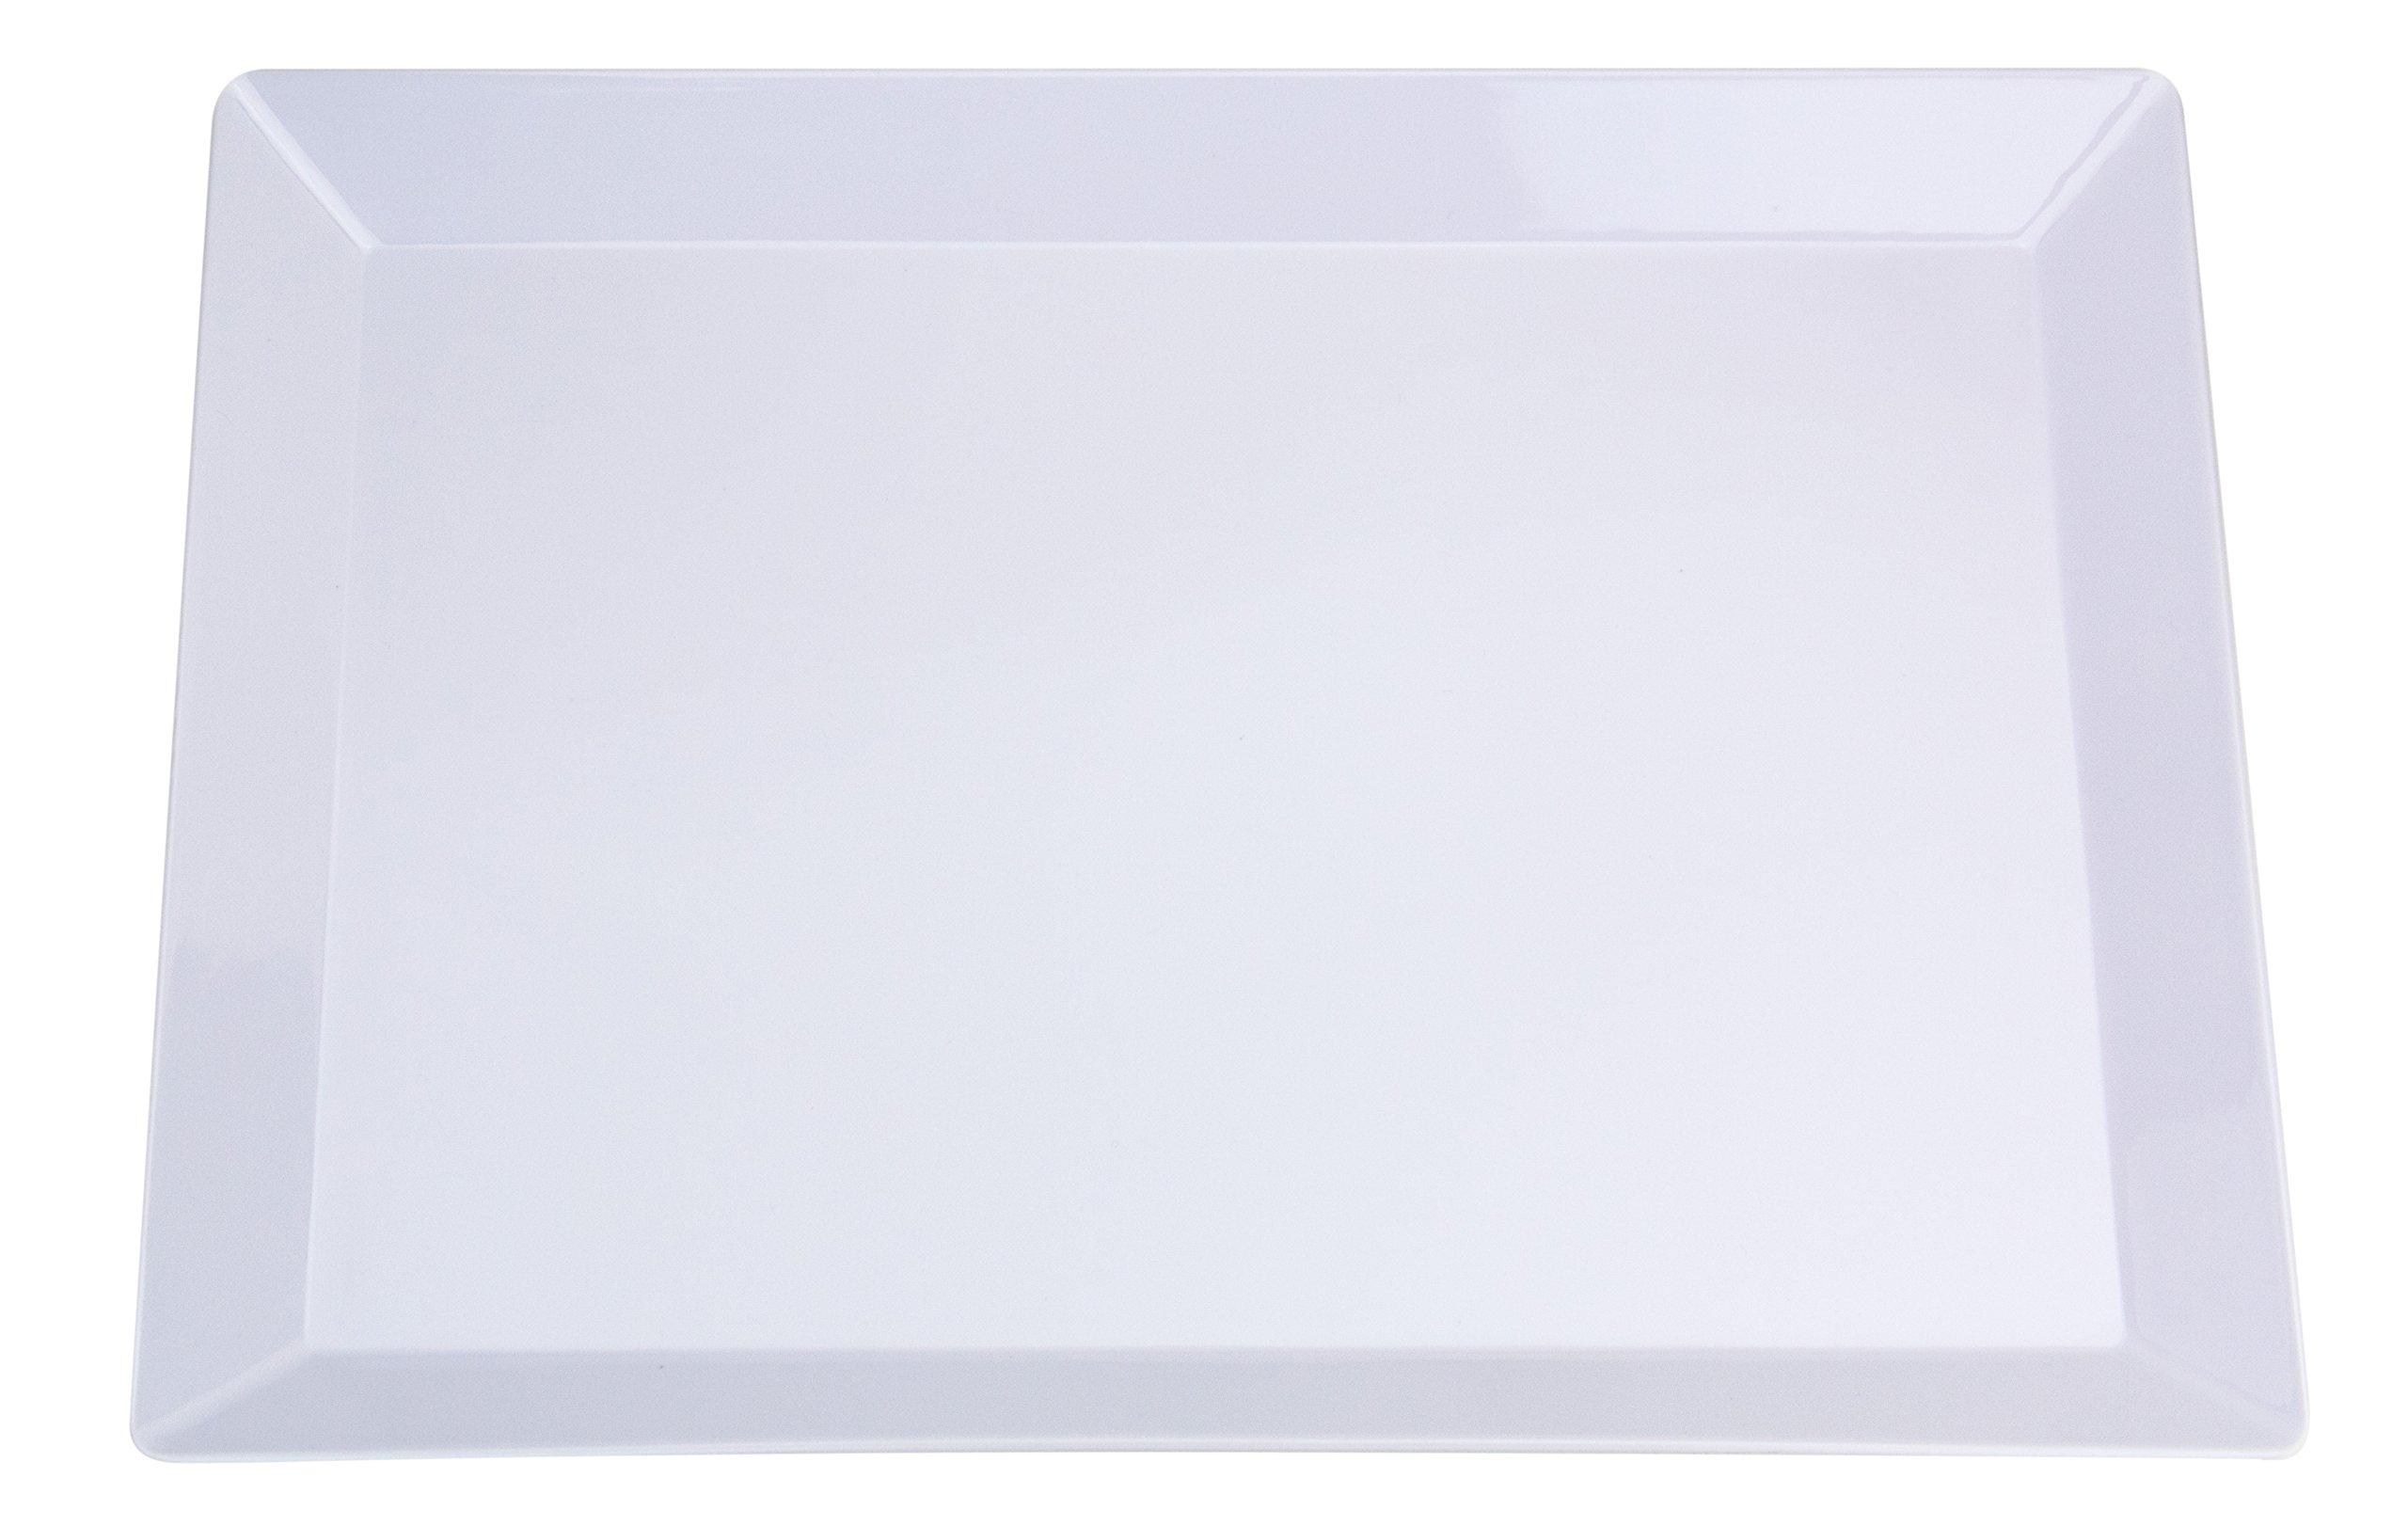 Set of 2 | NOMsquared Large Rectangular White Plastic Serving Tray. 18'' x 13'' 100% Melamine, BPA Free, Elegant, Heavy Duty, Durable. Perfect serving plate or platter for dinner parties, bbq's & baking